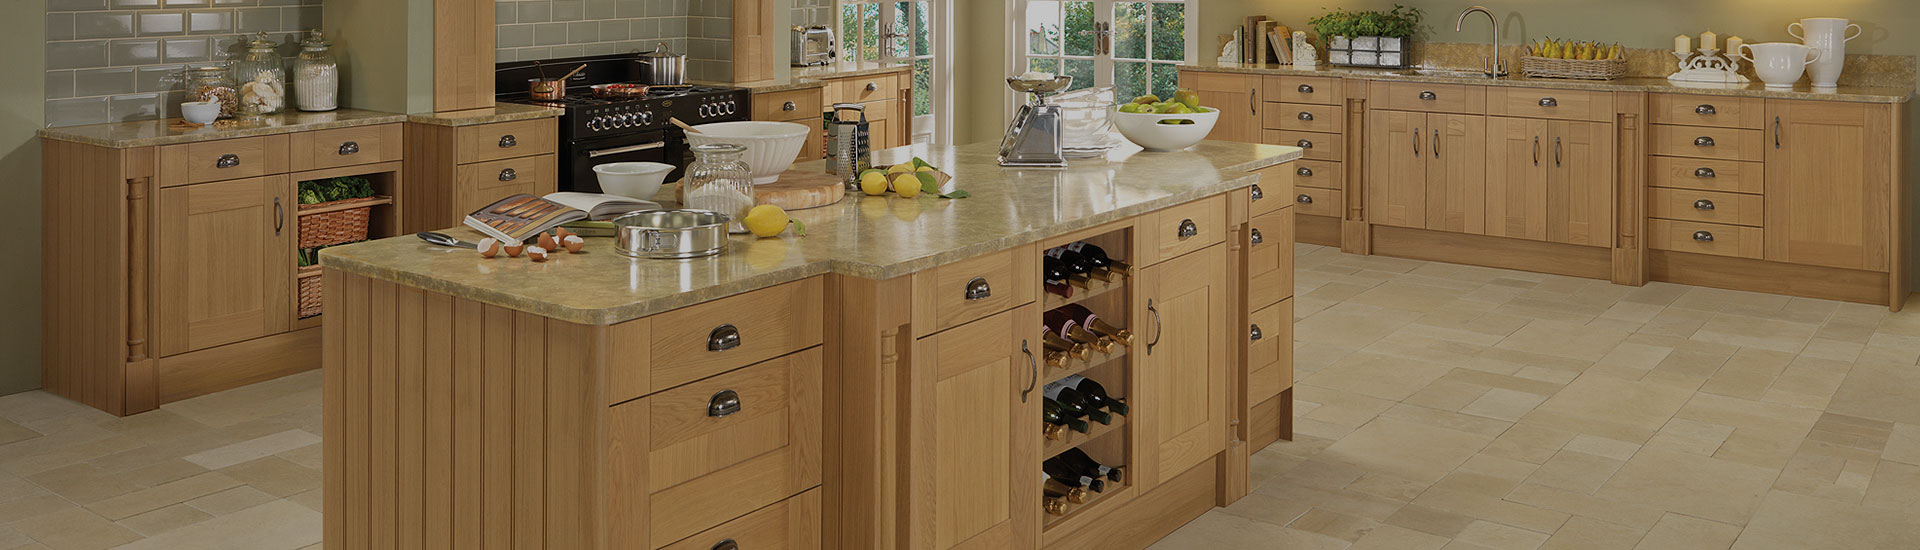 Ex Diskitchen Cabinets Home Urban Kitchens Affordable Kitchens Lancaster Urban